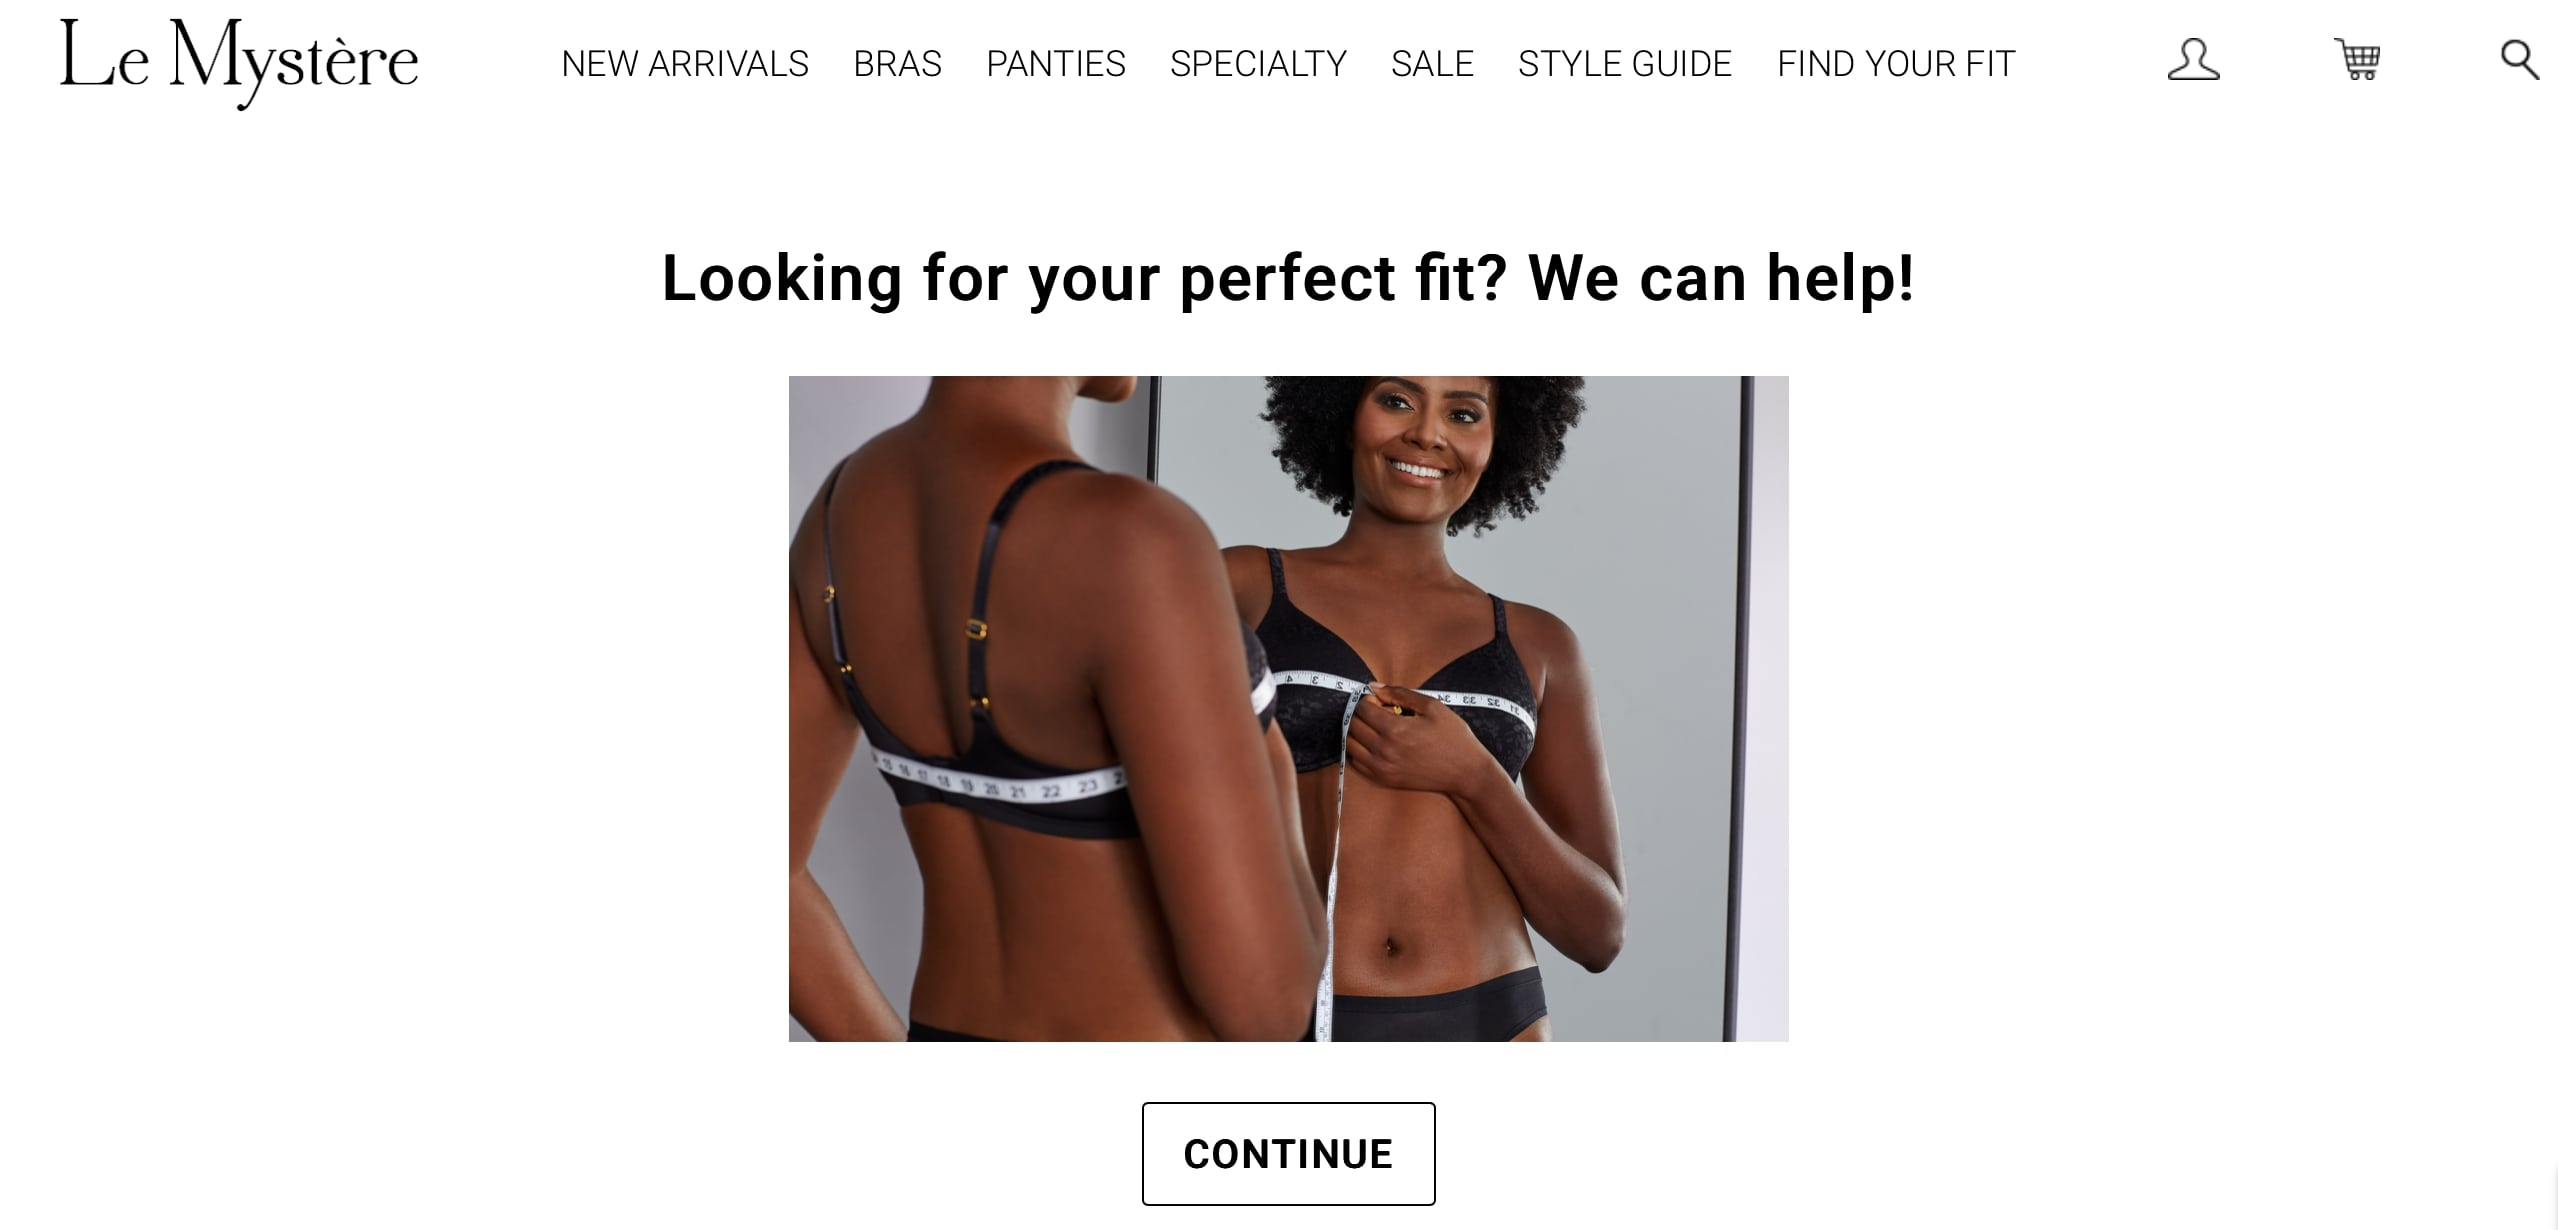 Beginning of Le Mysteres online quiz. It asks customers if theyre ready to find their perfect fit and shows an image of a woman with a measuring tape around her bust